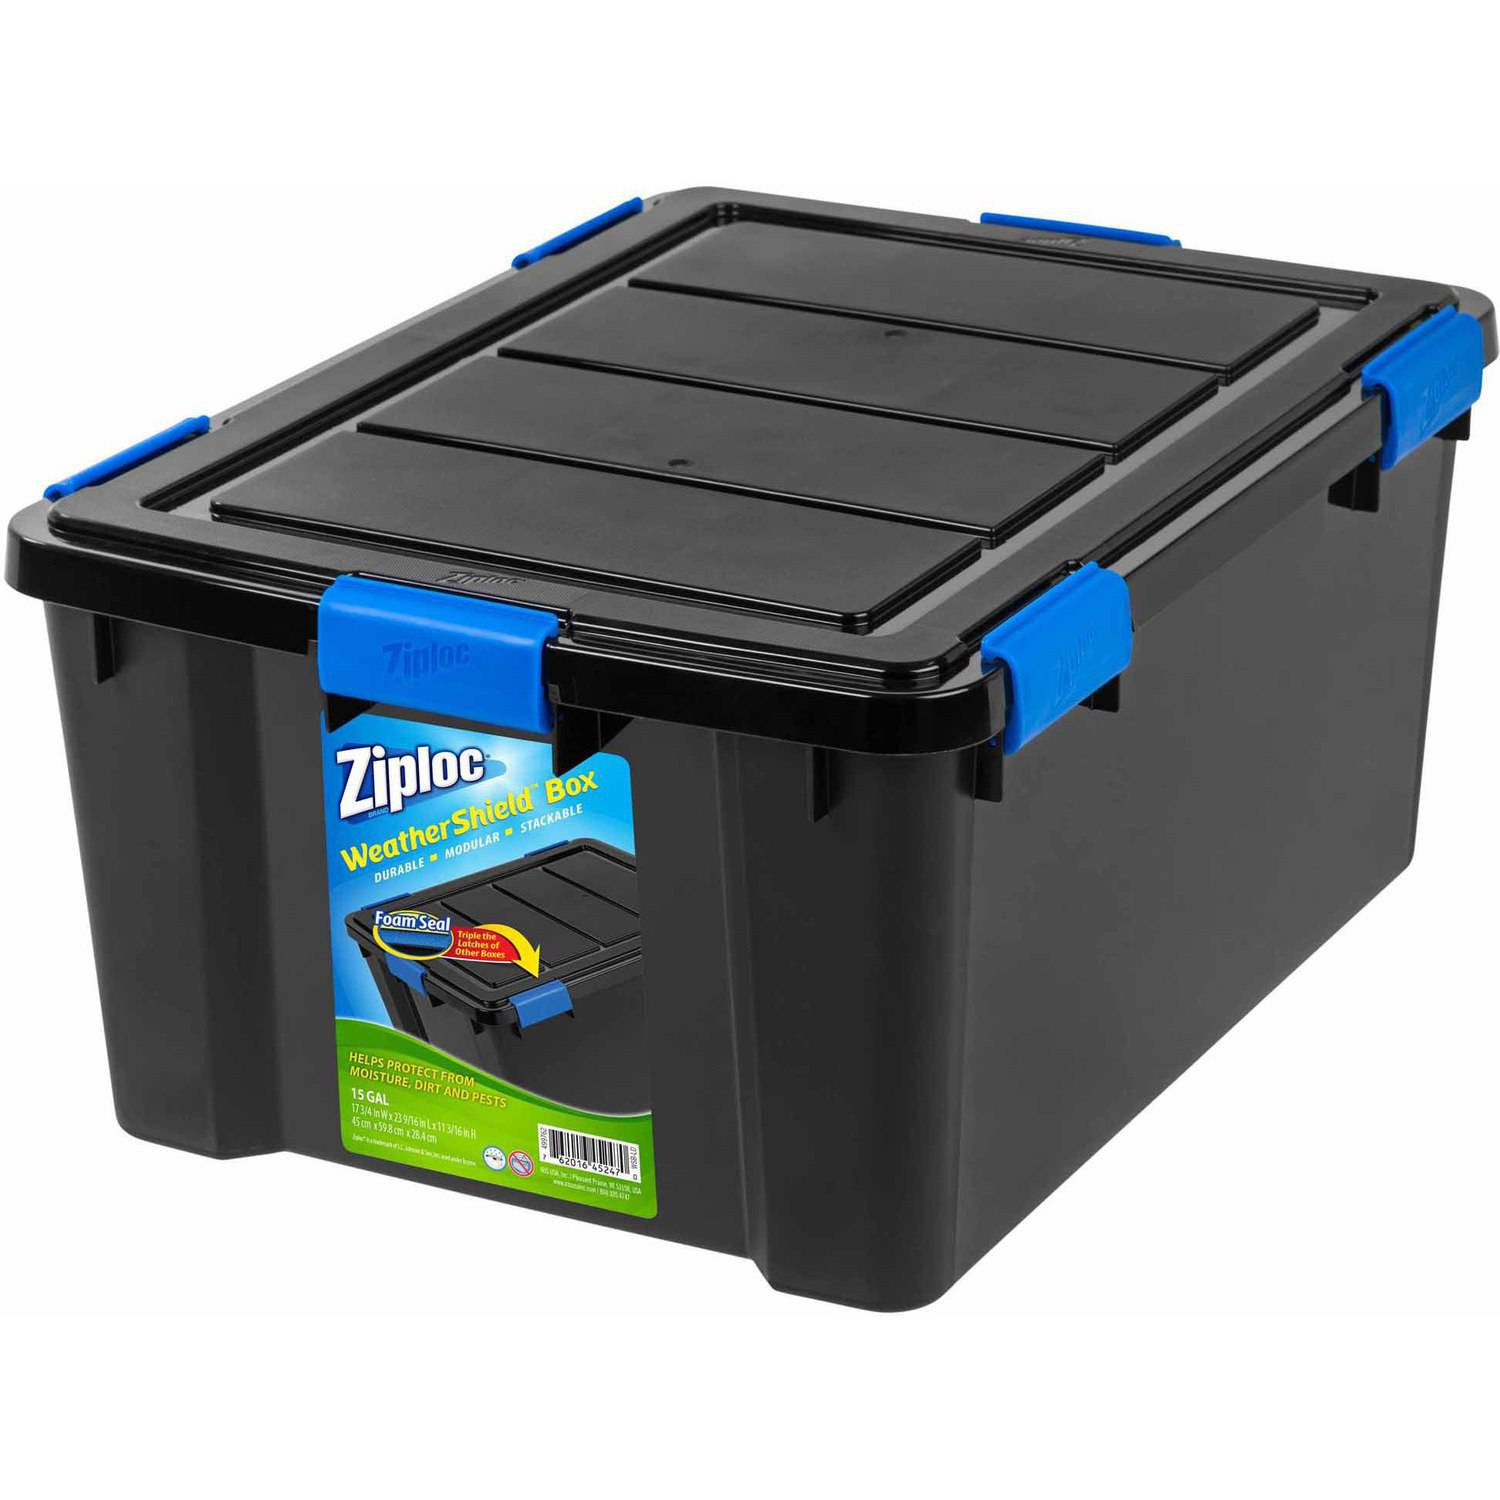 Ziploc WeatherShield Storage Box, Large